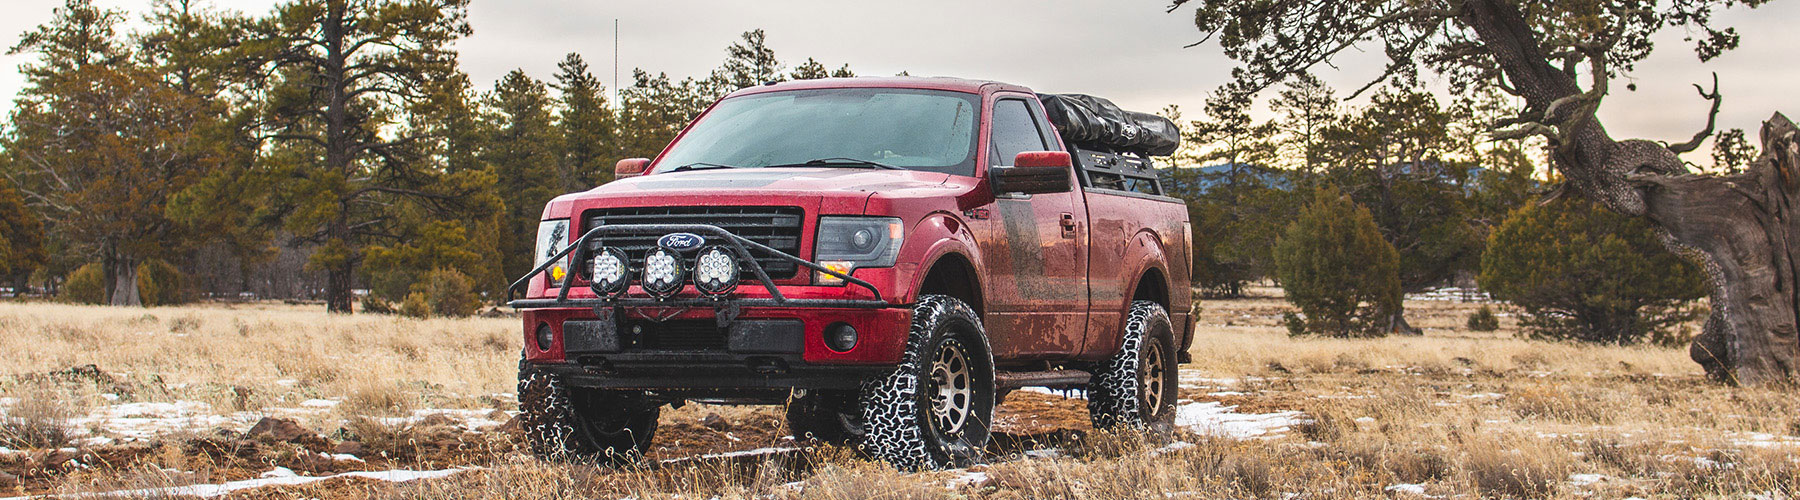 Stage 3's 2014 F150 3 5L EcoBoost Overland Tremor Project Truck